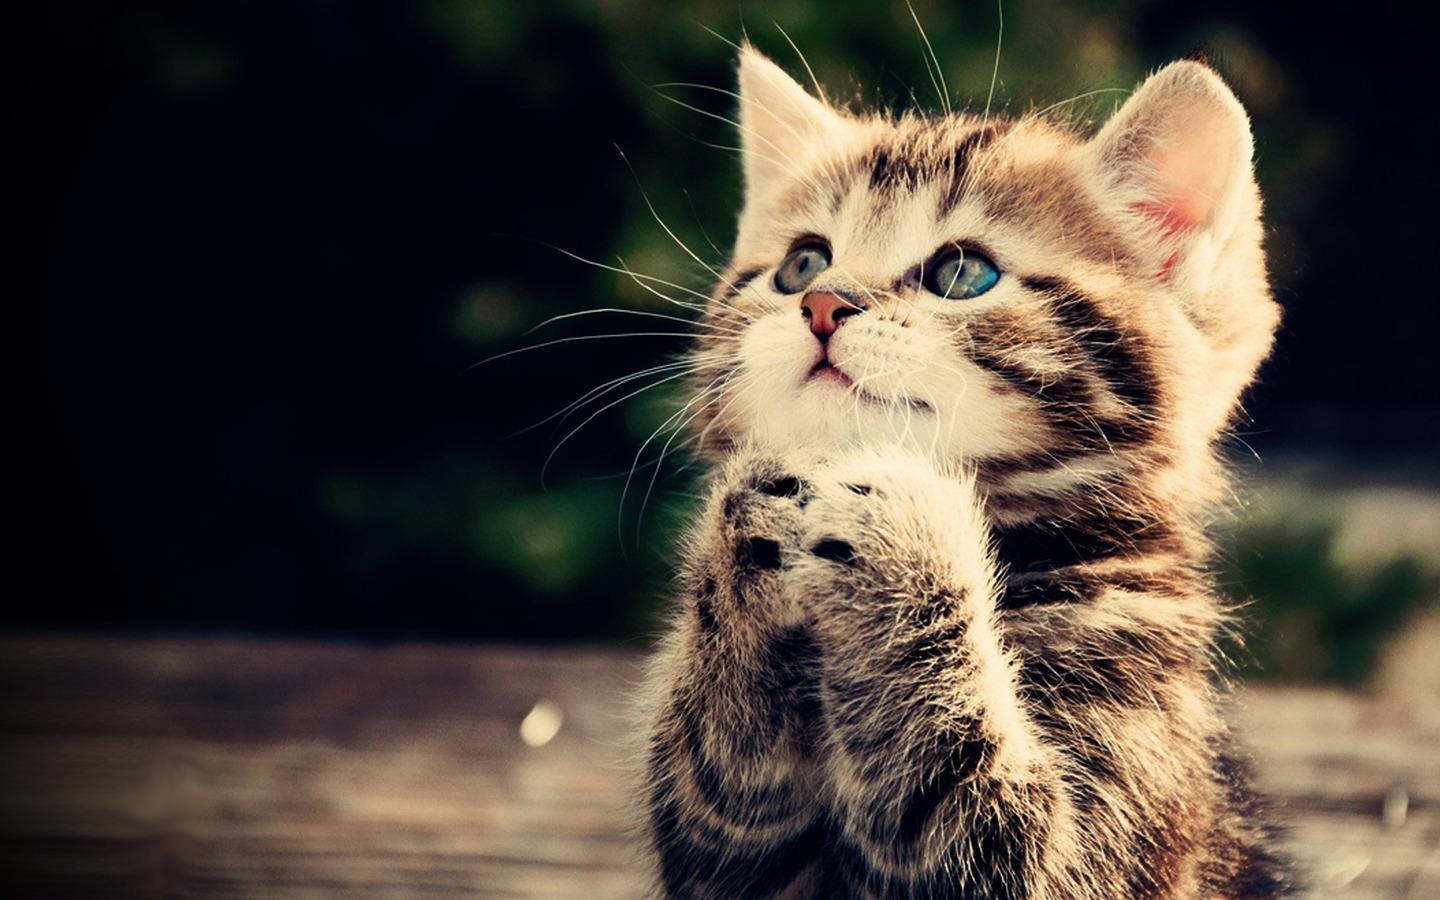 Cute Kitten Wallpaper 1 01 APK Download Android Personalization Apps